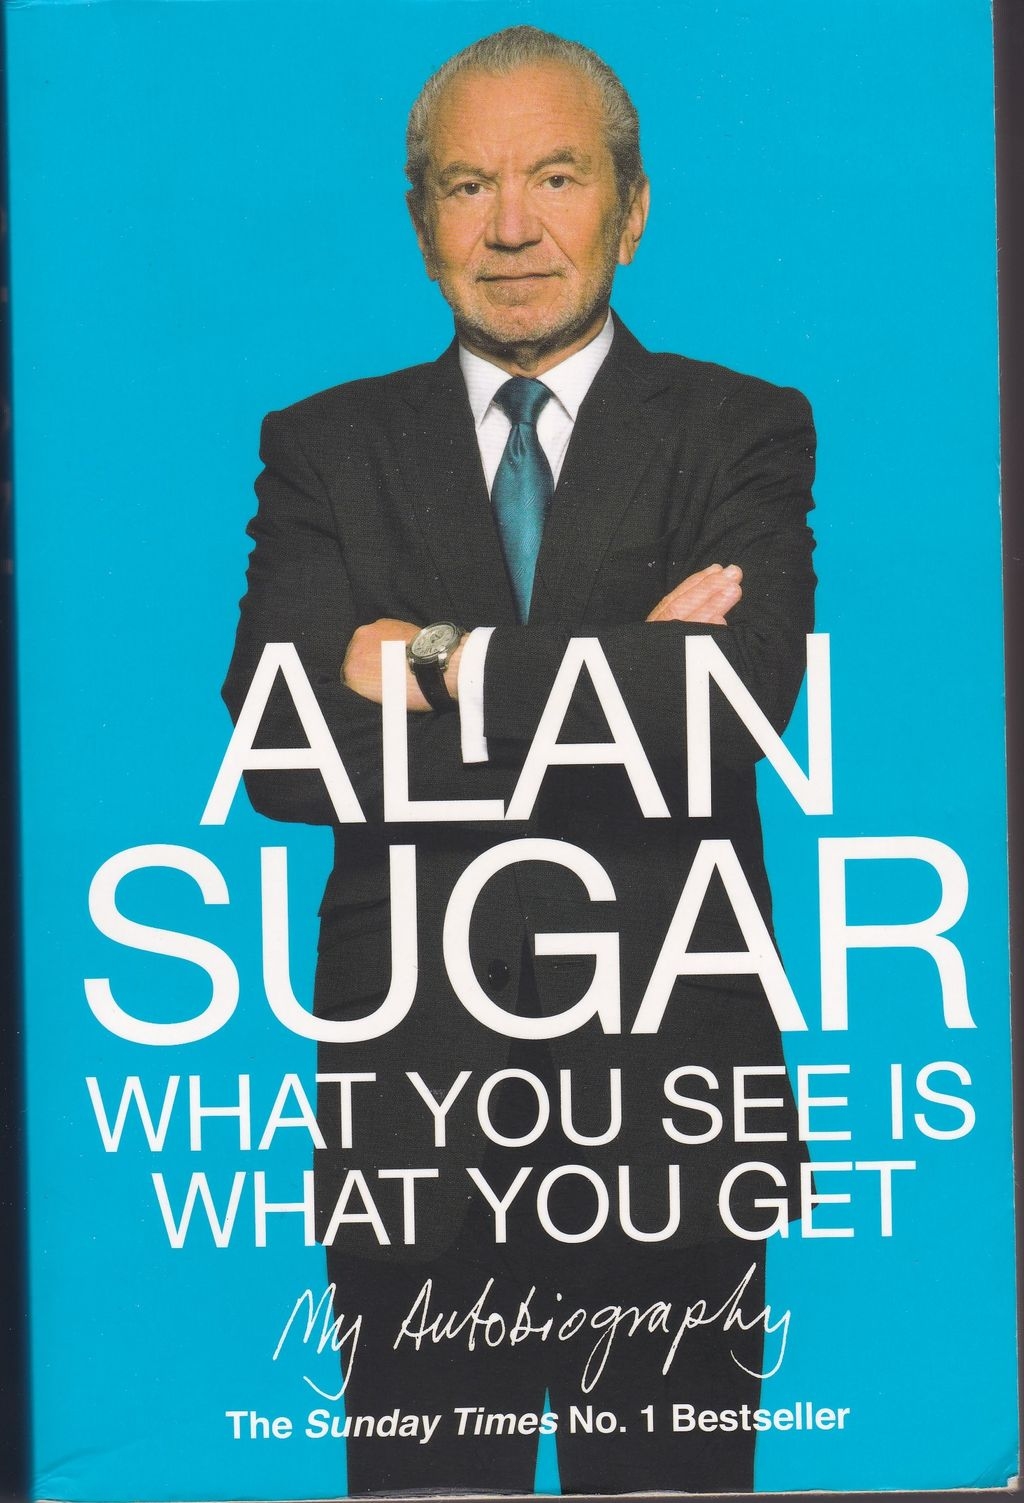 What you see is why you get, Lord Alan Michael Sugar's biography